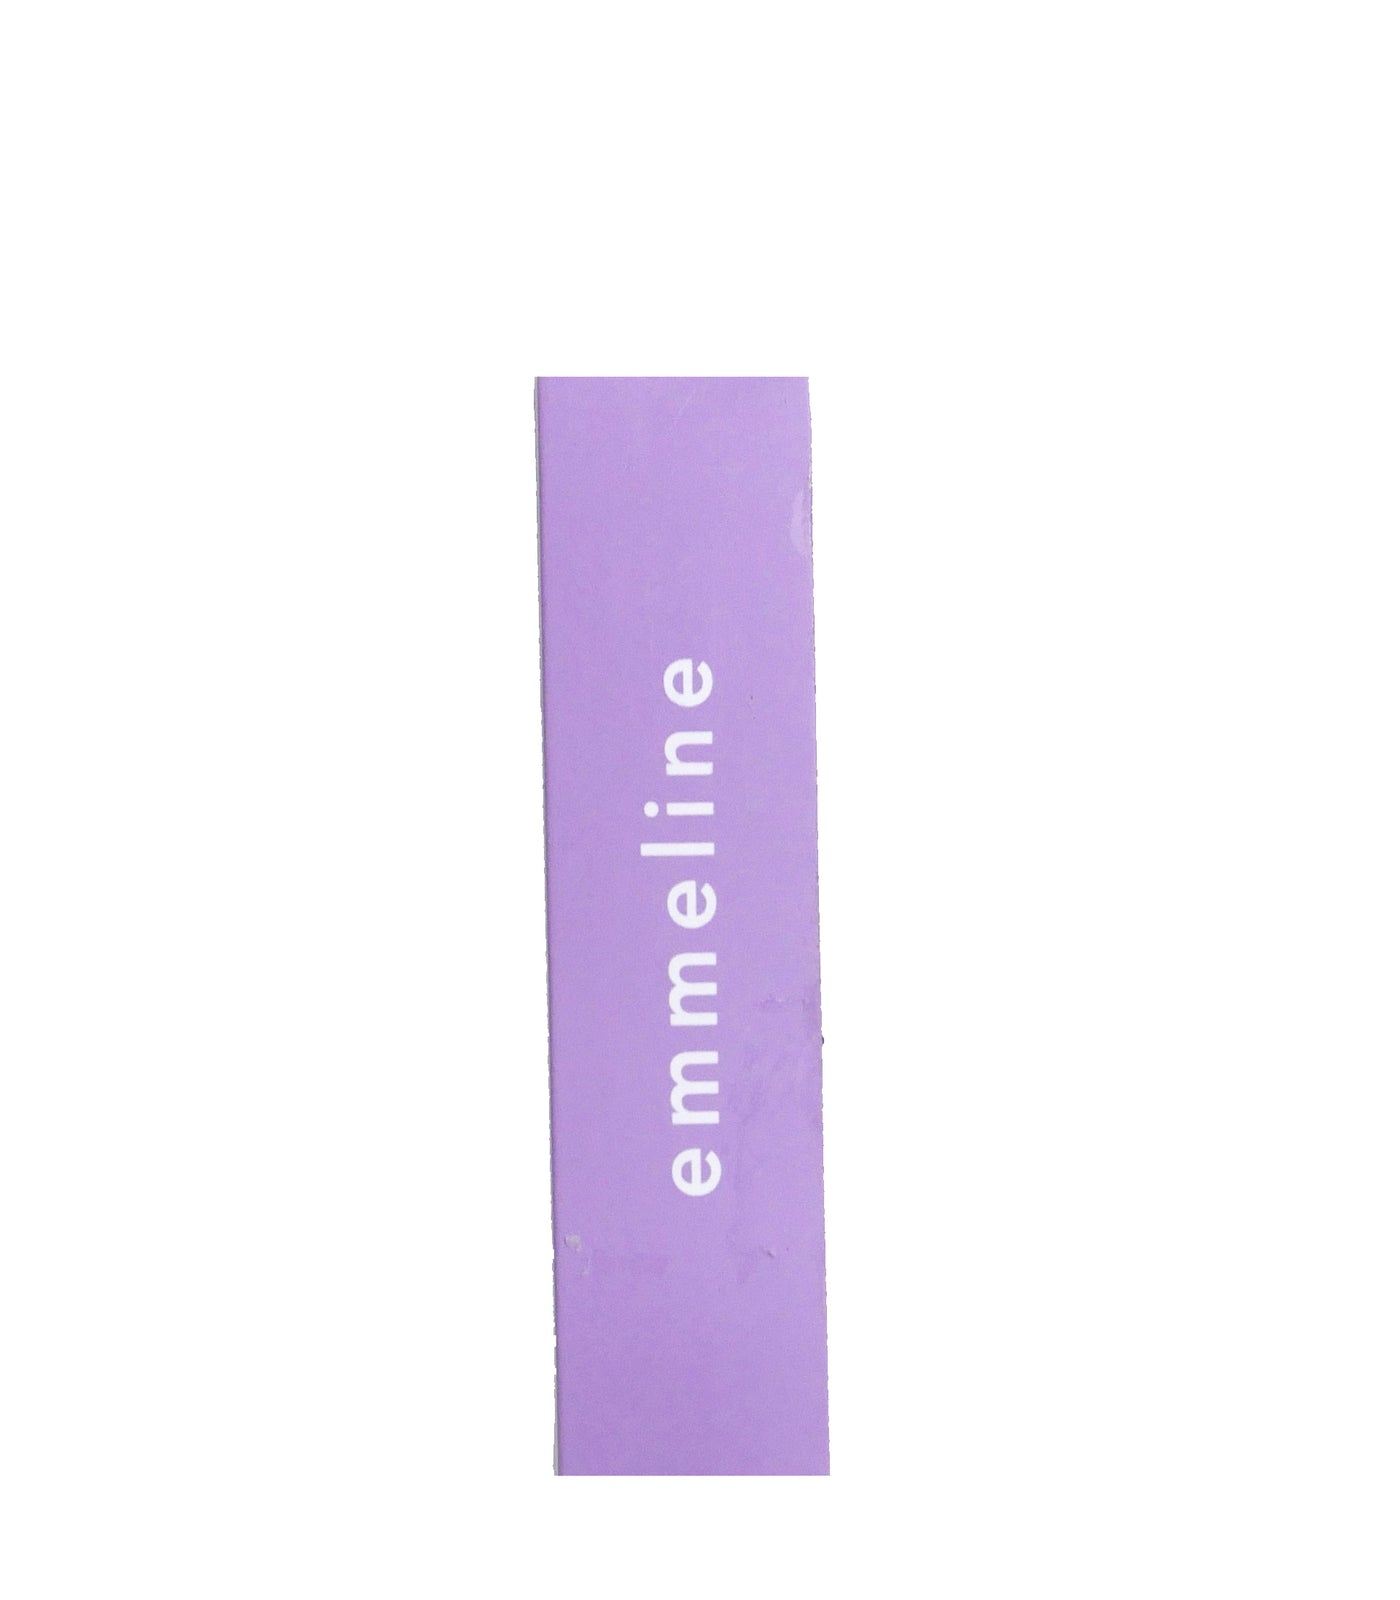 EMMELINE SOAP BAR - Eczema Relief Bar